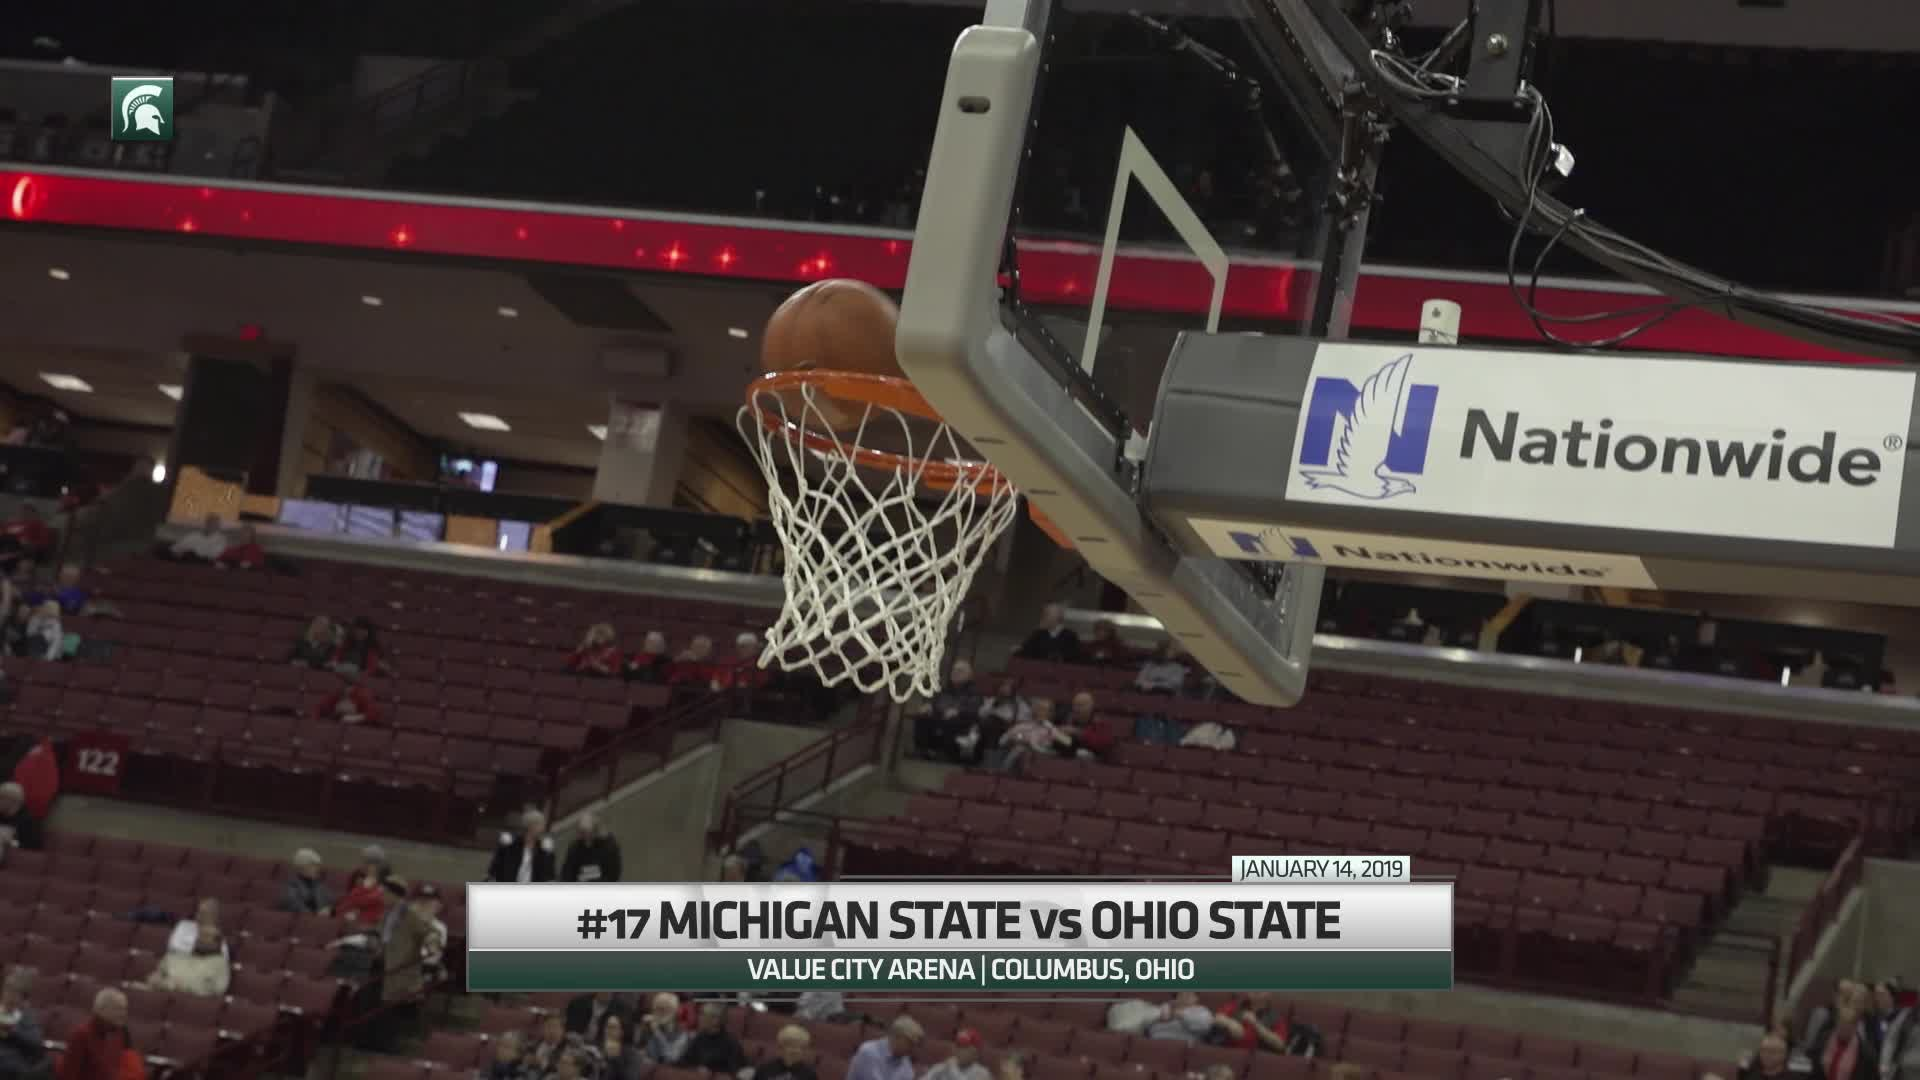 Michigan State University Athletics Official Website 2d Electrical Plan 17 Vs Ohio